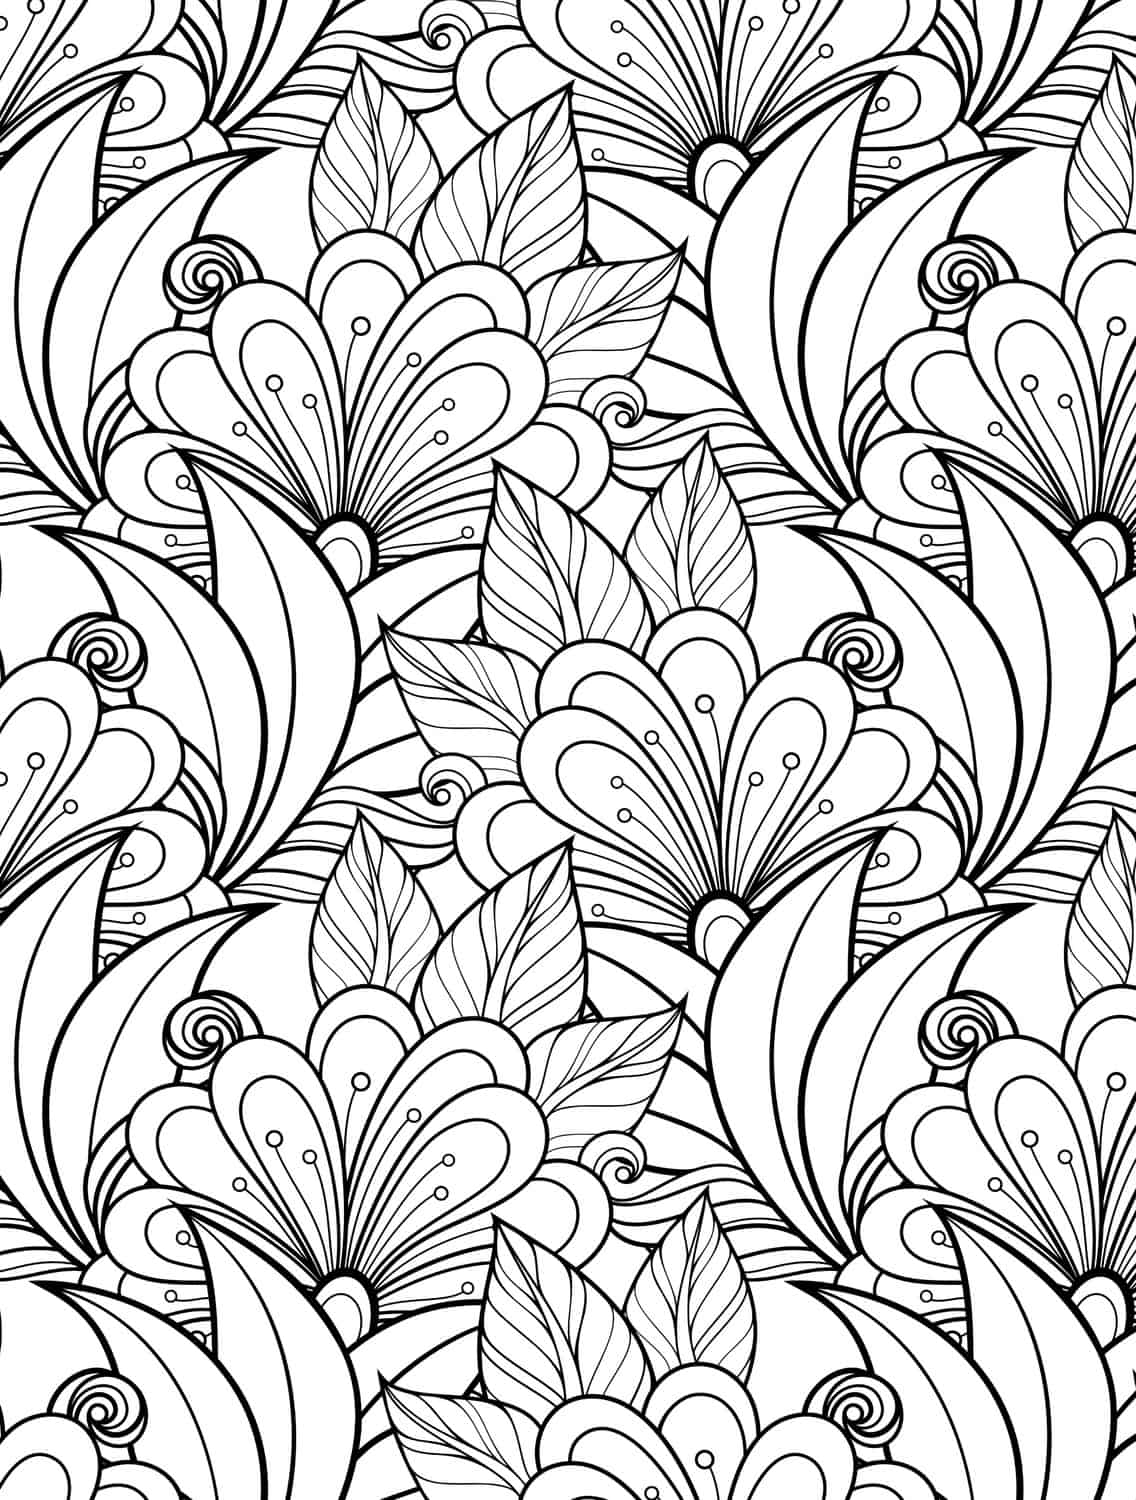 24 More Free Printable Adult Coloring Pages Page 7 Of 25 Free Printable Coloring Pages Adults